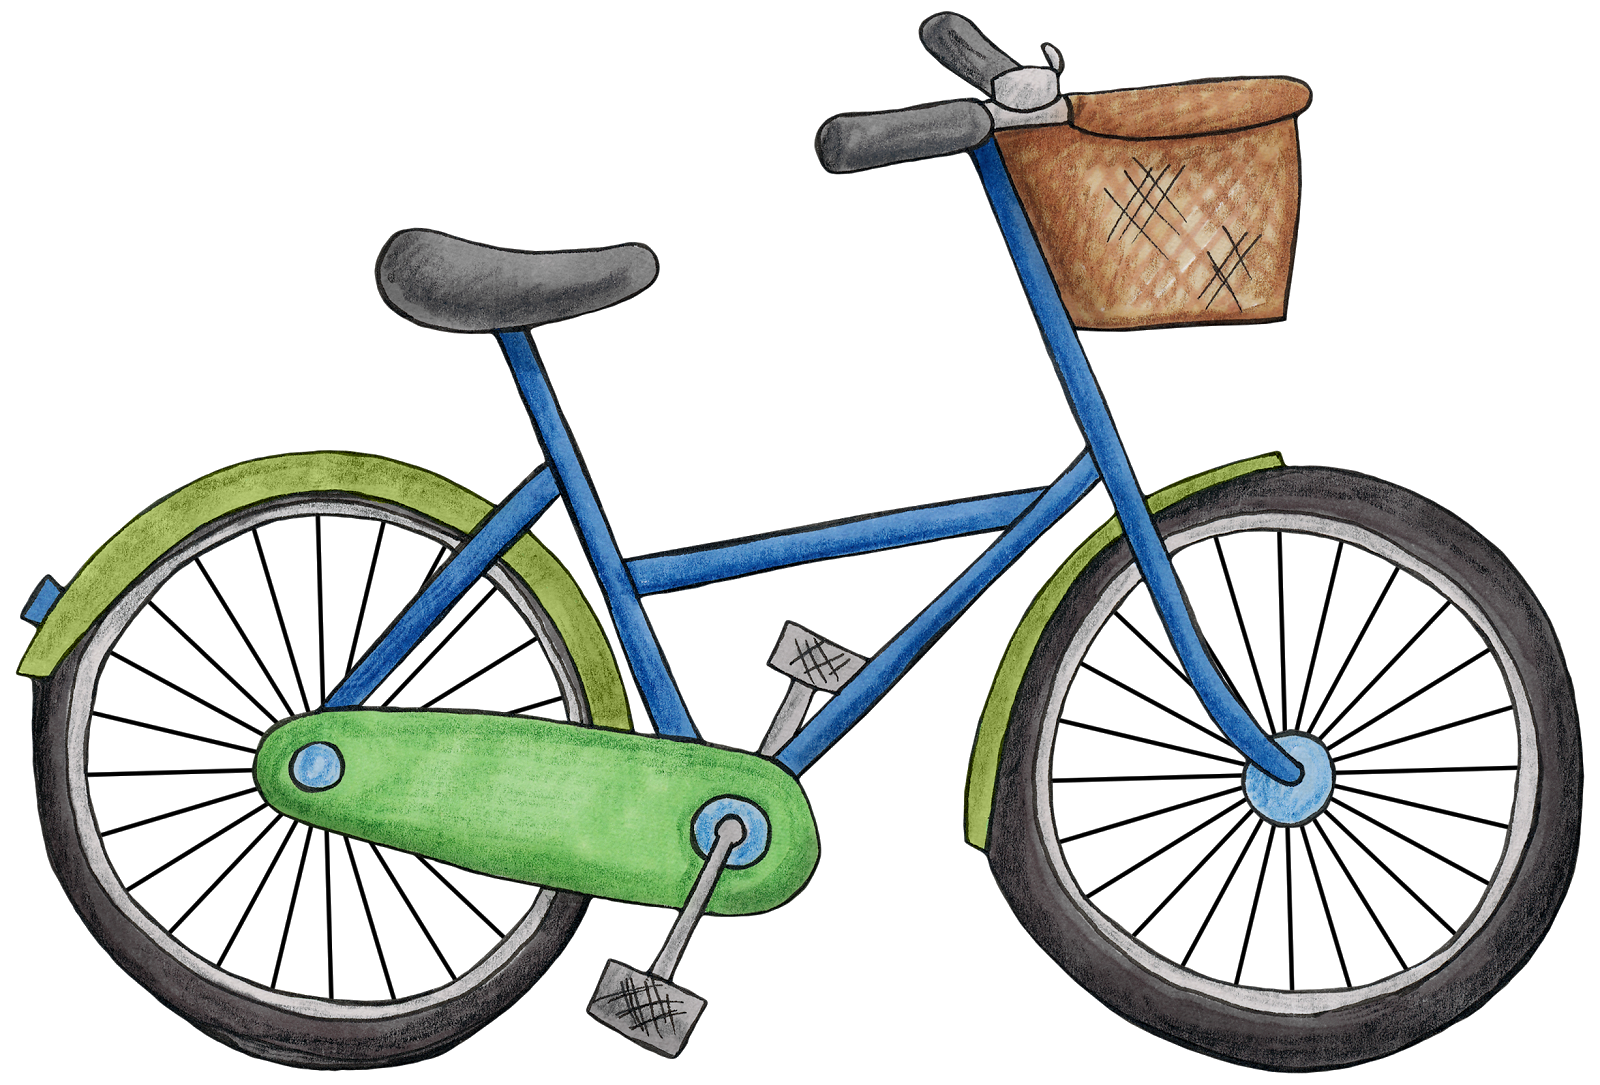 Bicycle png images free. Bike clipart